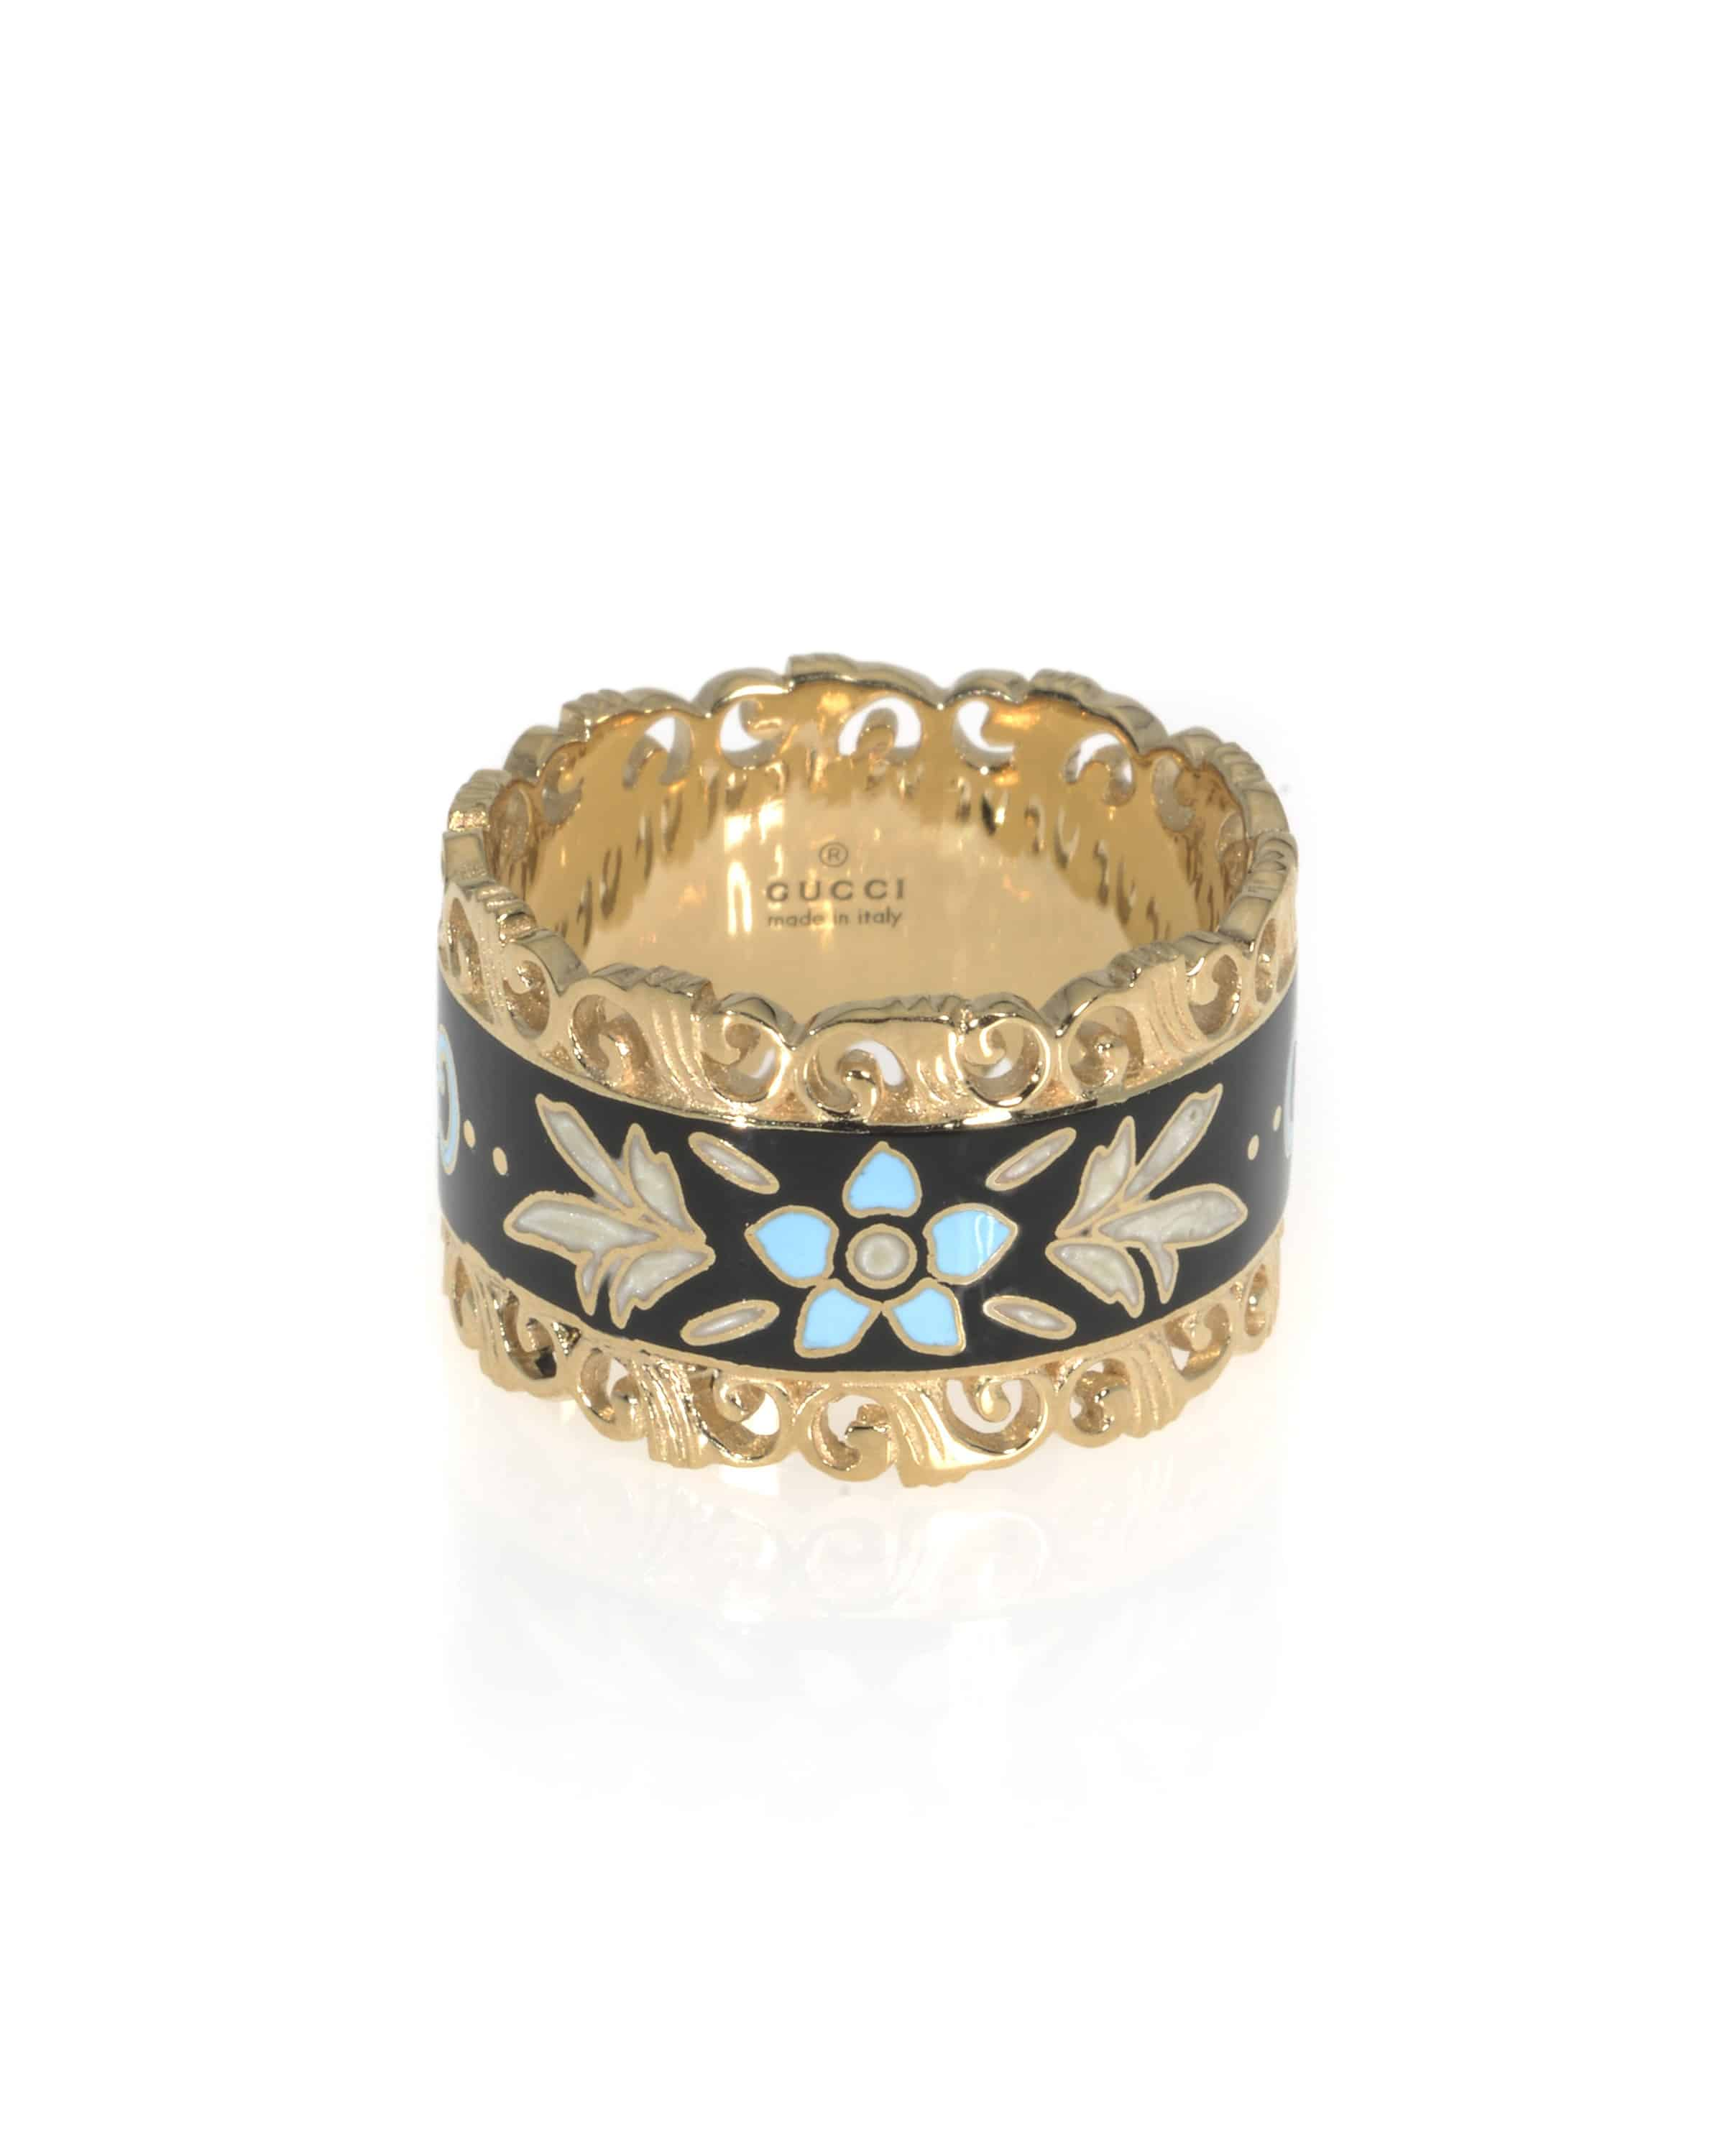 Gucci Icon 18k Yellow Gold And Enamel  Ring YBC479370001012 Size 6